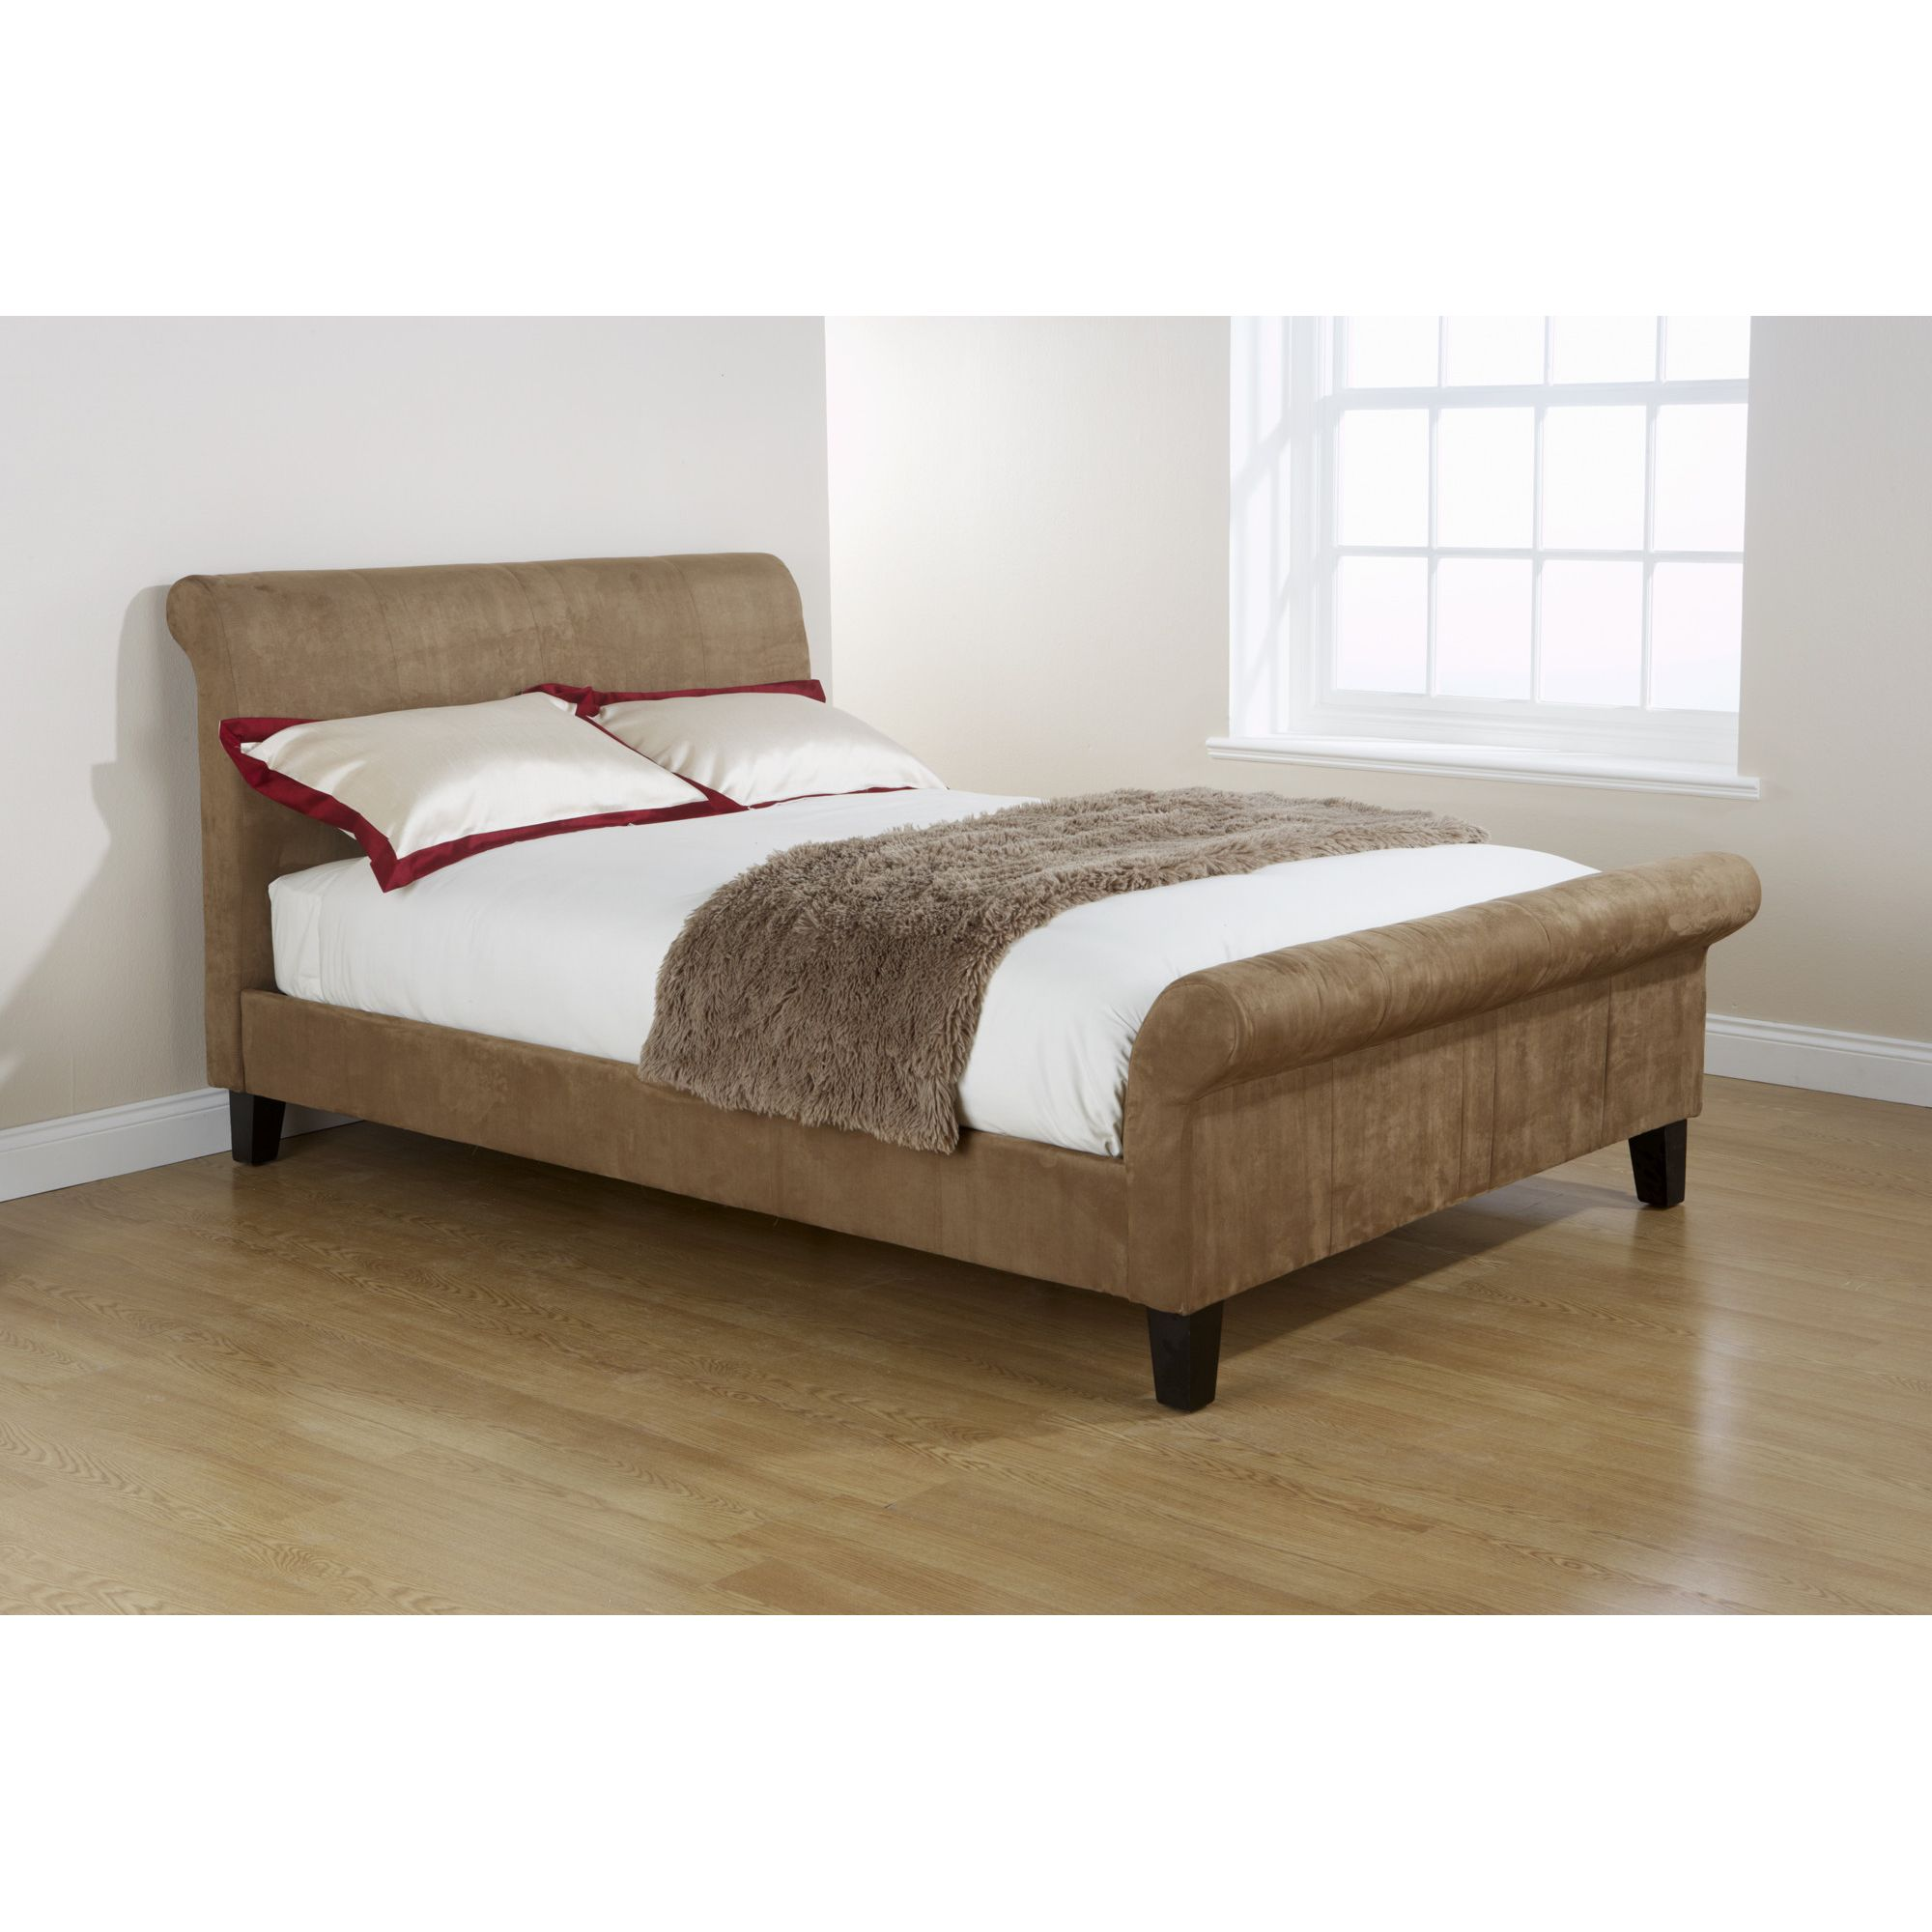 Elements Amalfi Microfibre Bed - Double at Tesco Direct